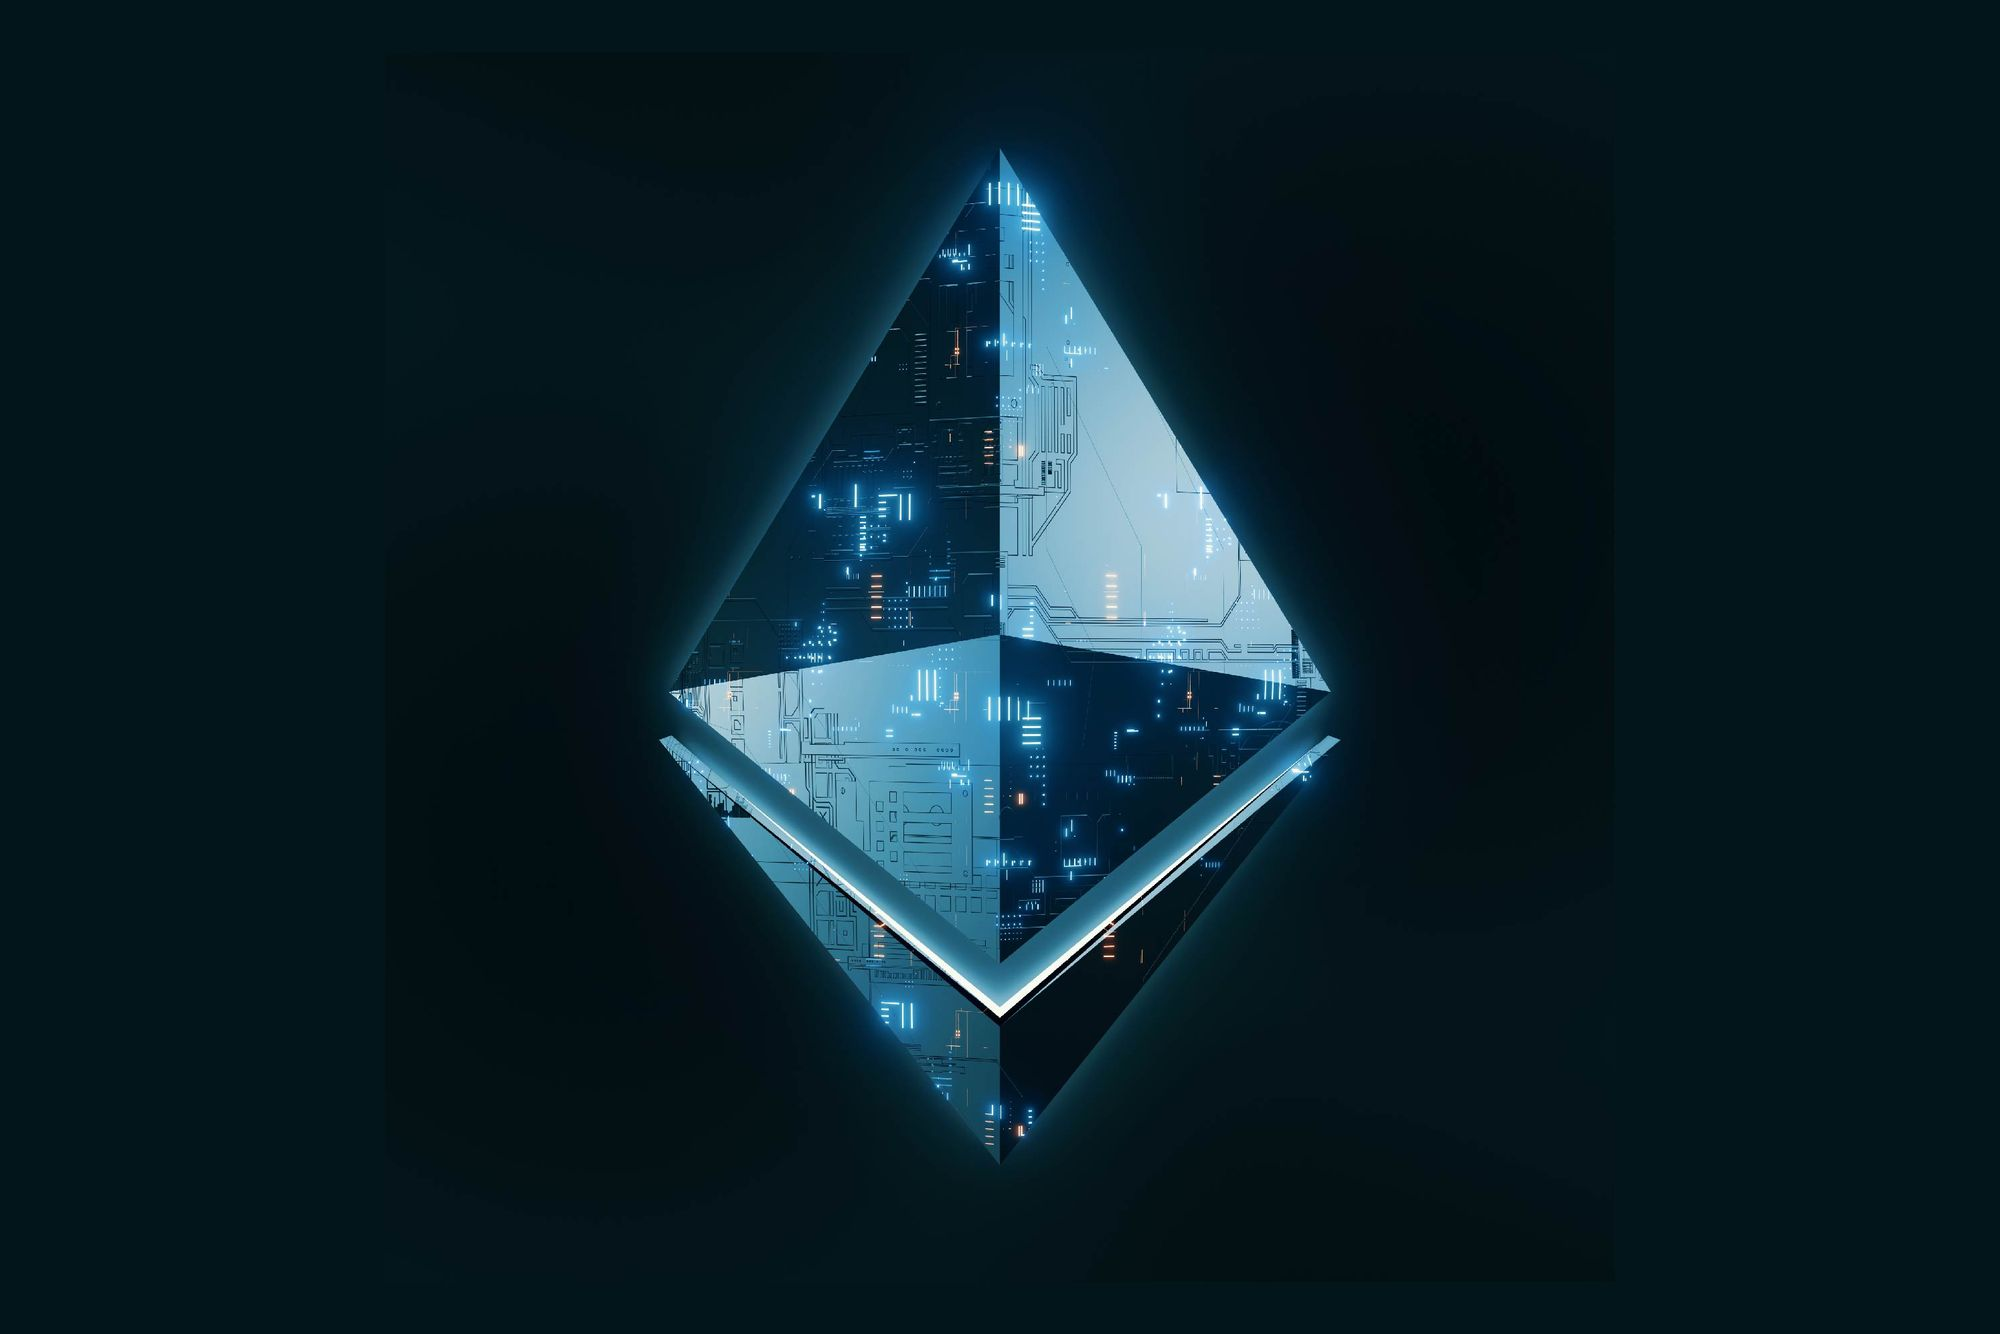 Ethereum 2.0 already has almost 170K active validators with staked ETH at 5.4M